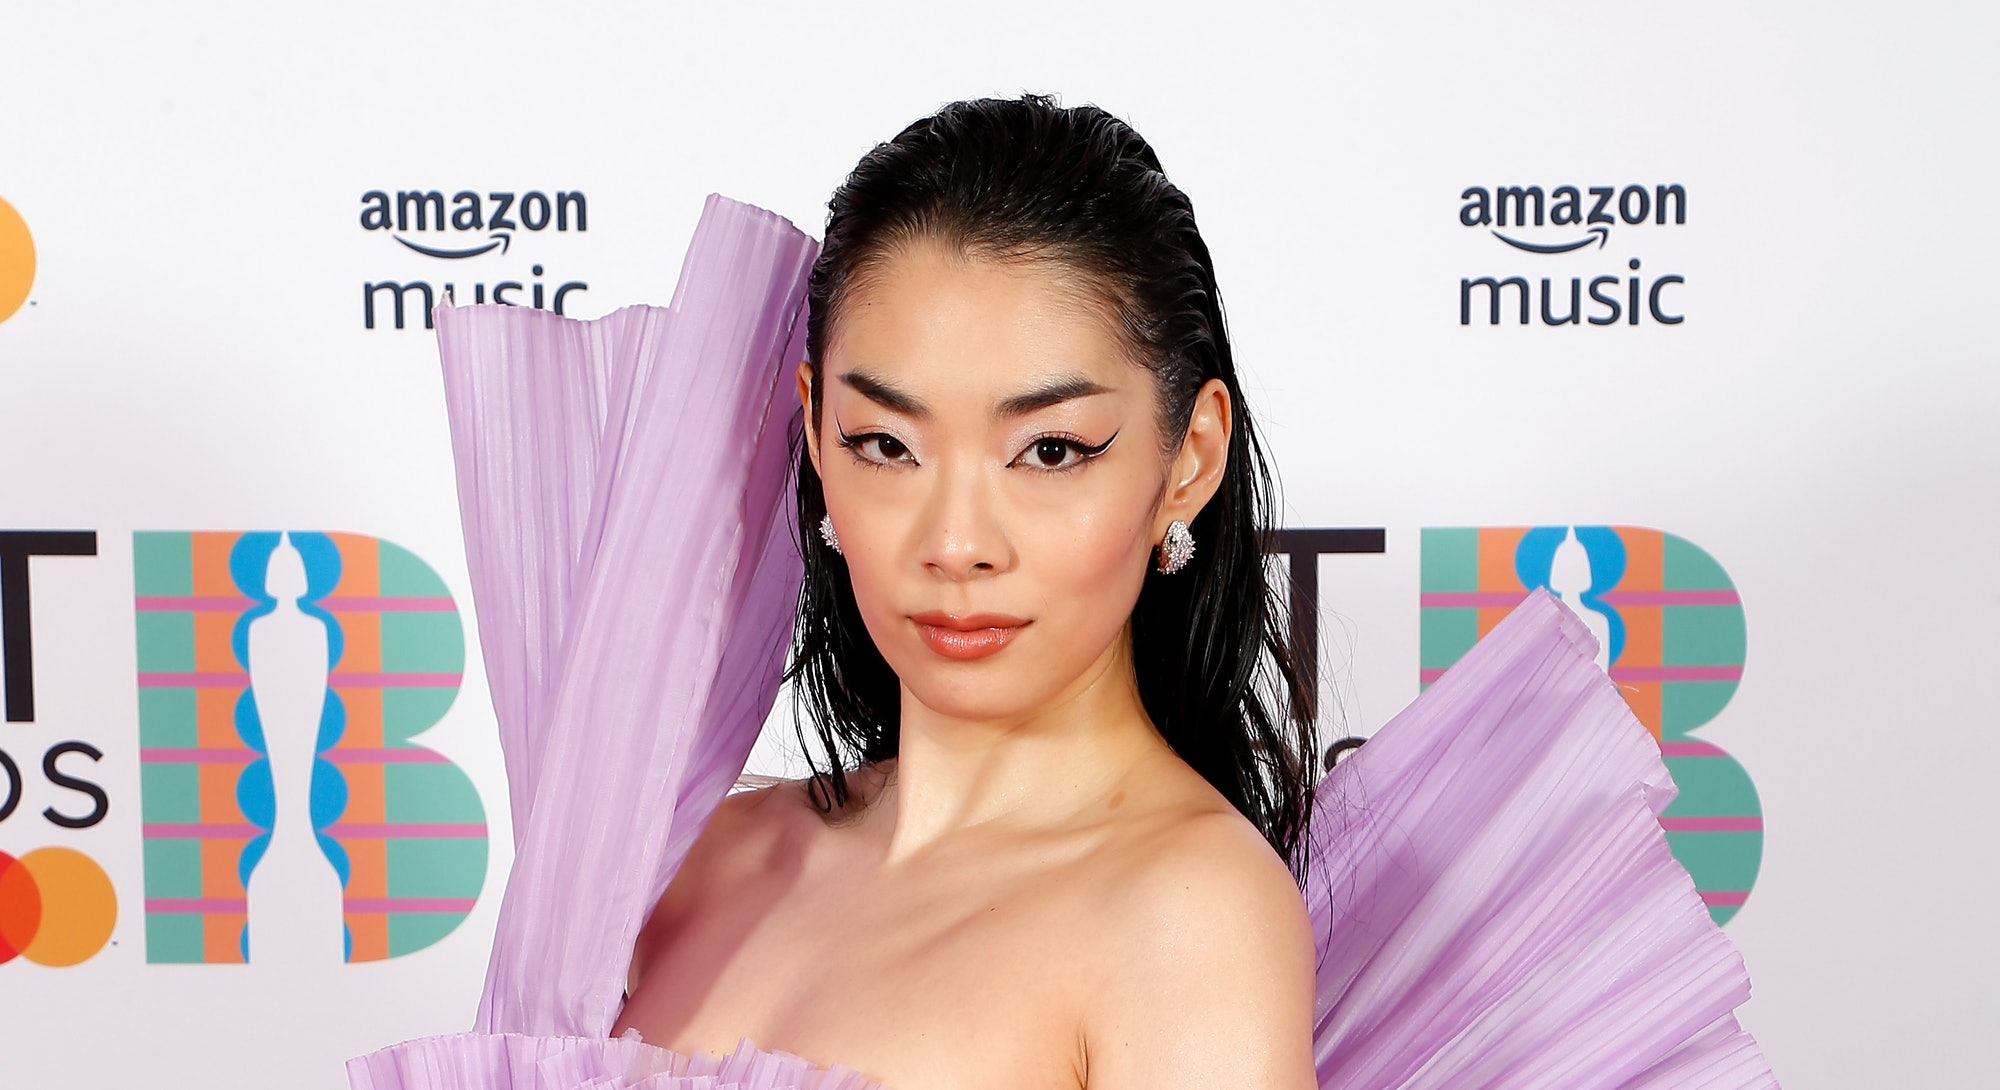 LONDON, ENGLAND - MAY 11: Rina Sawayama attends The BRIT Awards 2021 at The O2 Arena on May 11, 2021 in London, England. (Photo by JMEnternational/JMEnternational for BRIT Awards/Getty Images)